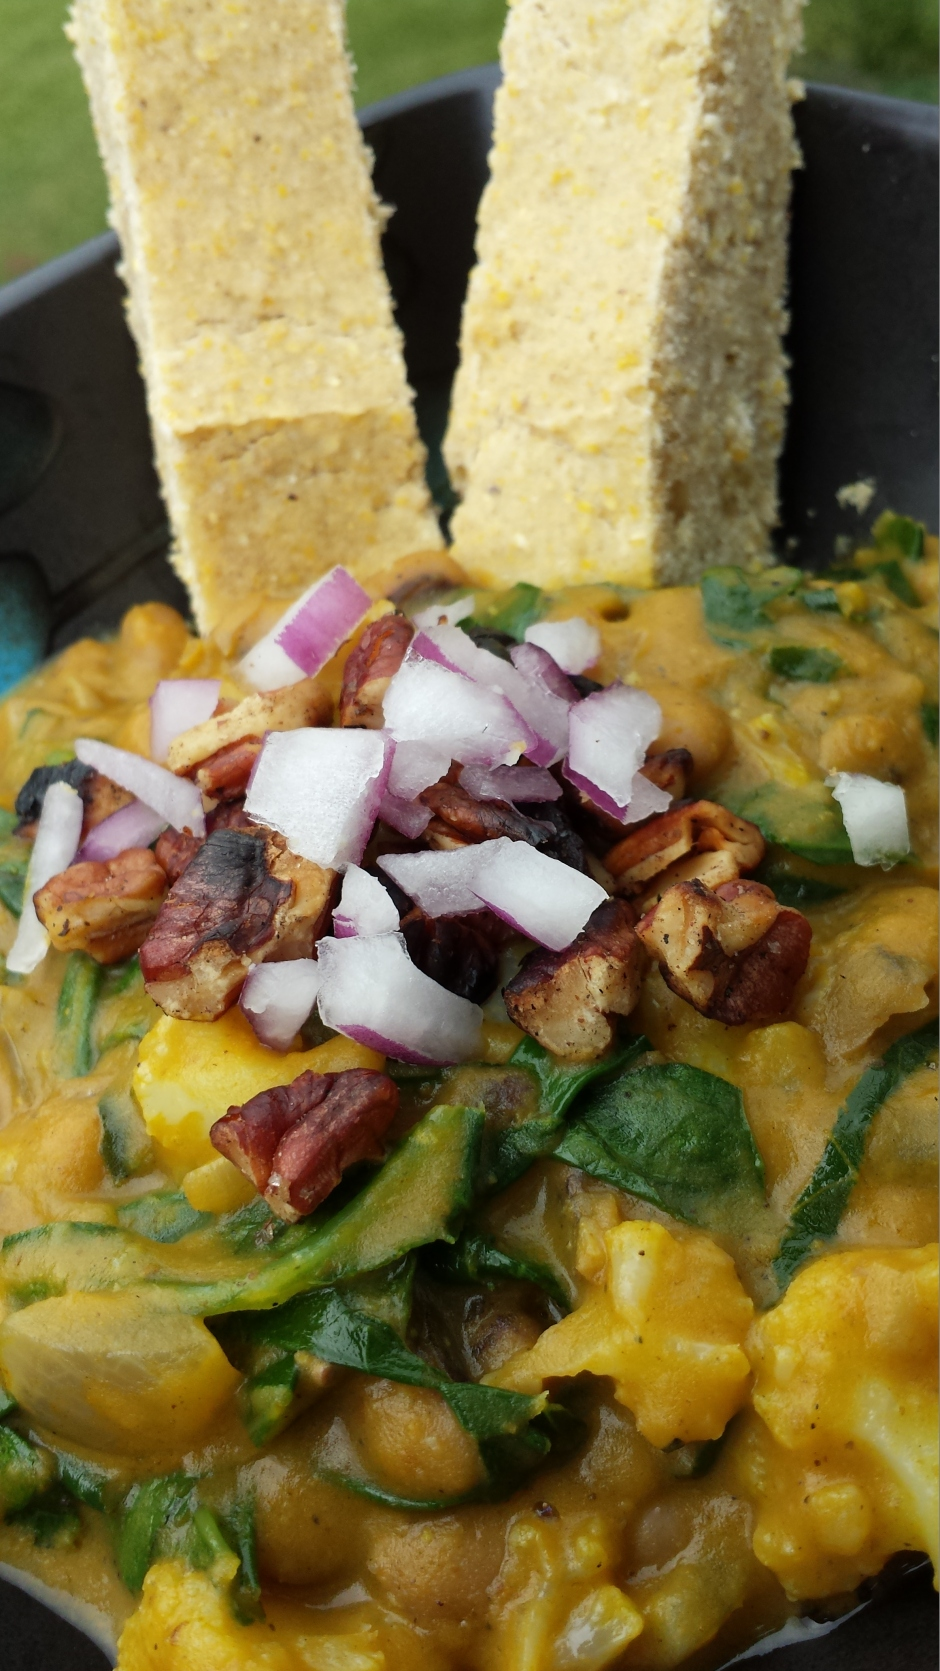 NC - Indian Fusion Black-eyed Pea and Collards Curry w/Coconut Milk and Pumpkin, topped with toasted pecans and red onions. Served with a no-egg version of Bob's Red Mill Cornbread #vegprodrev #veganmofo #vgnmf15